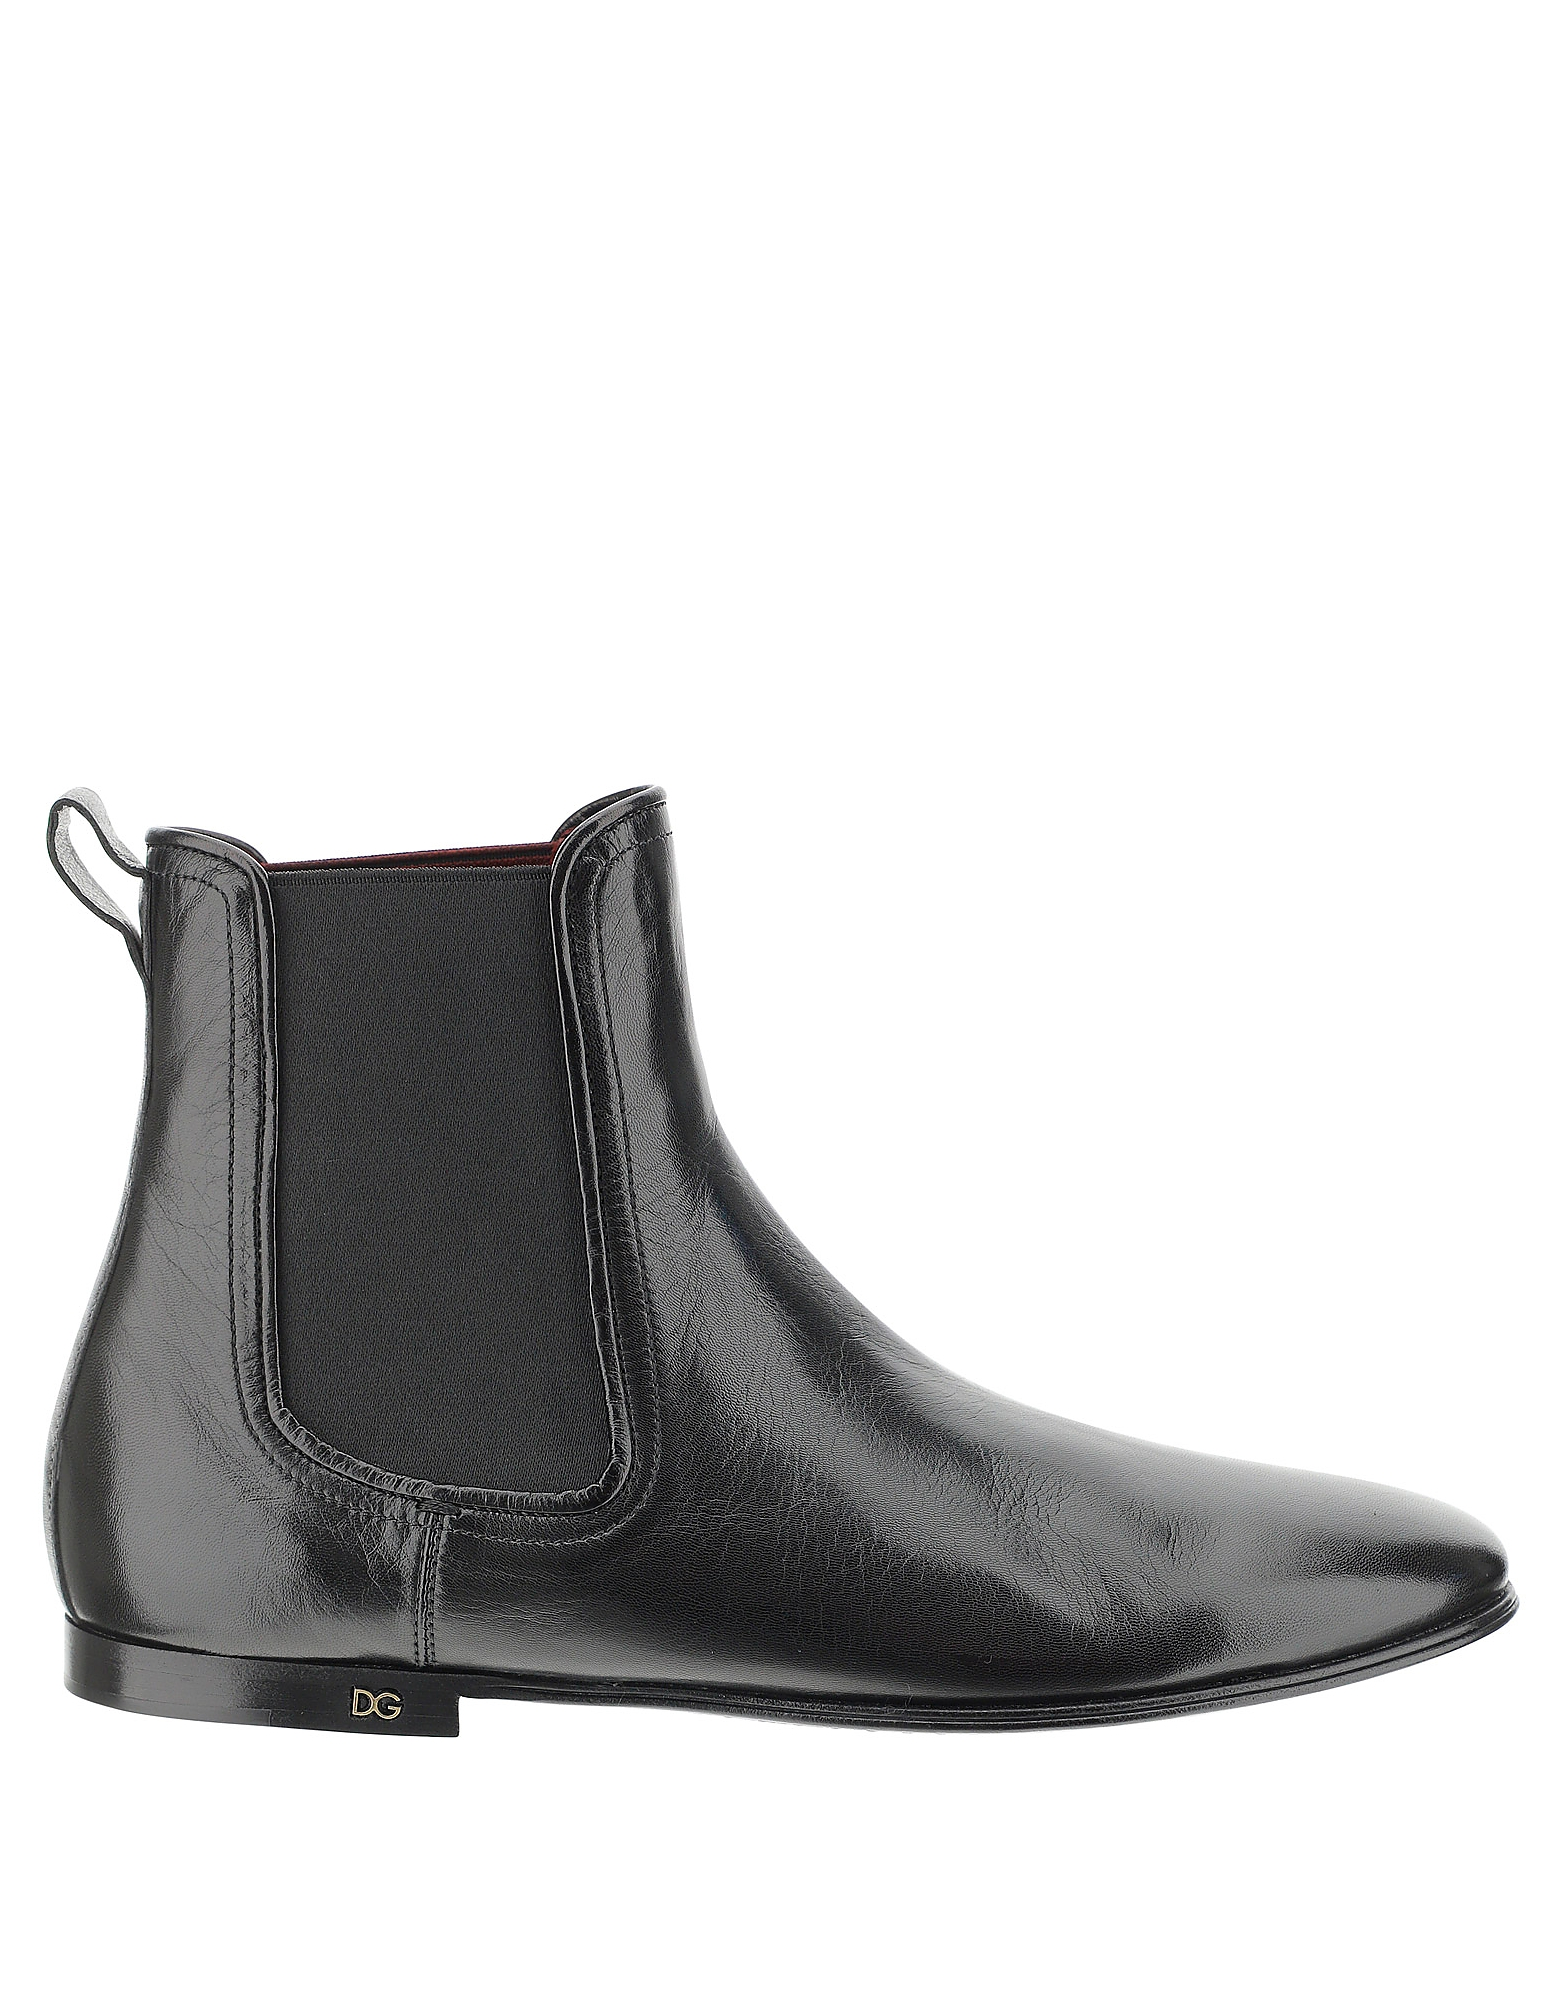 Dolce & Gabbana Designer Shoes, Black Leather Ankle Boots